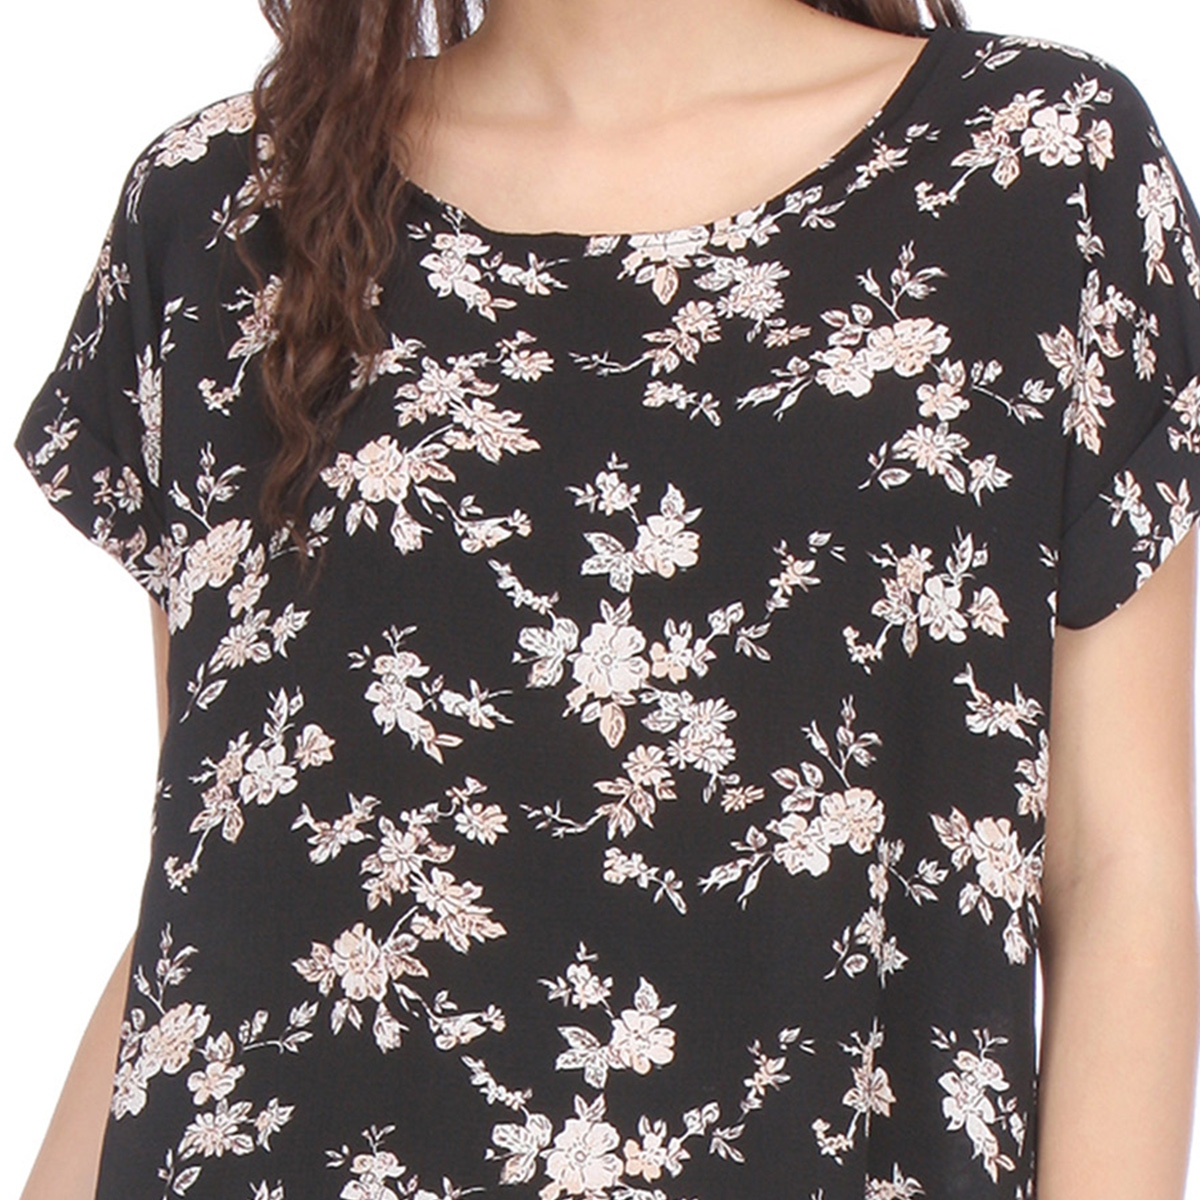 Black Colored Printed Cotton Top